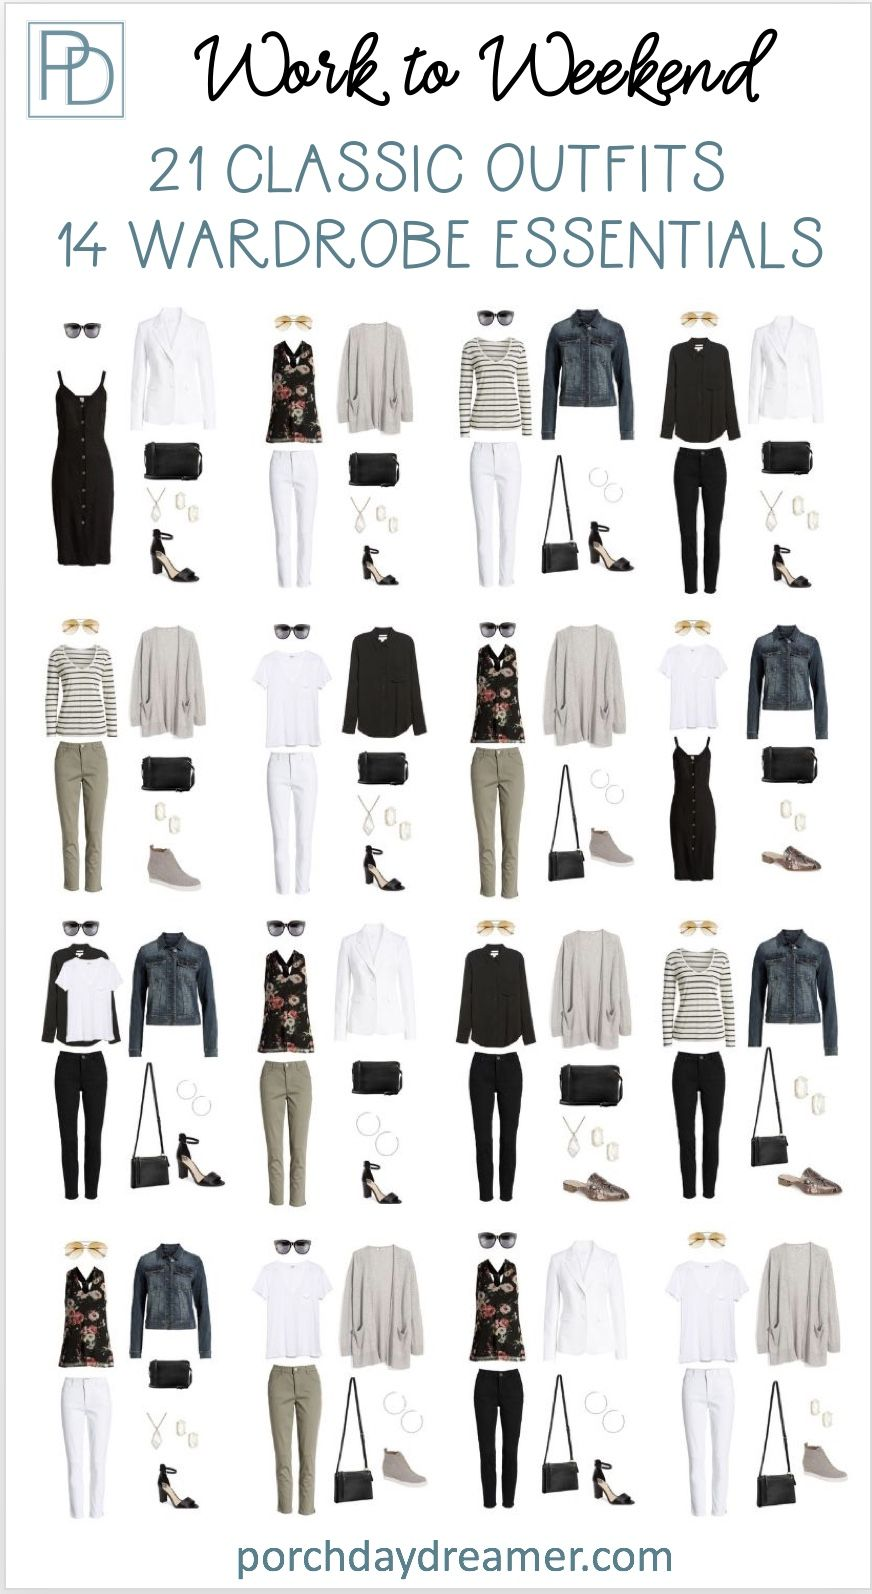 21 Classic Outfits from 14 Wardrobe Essentials